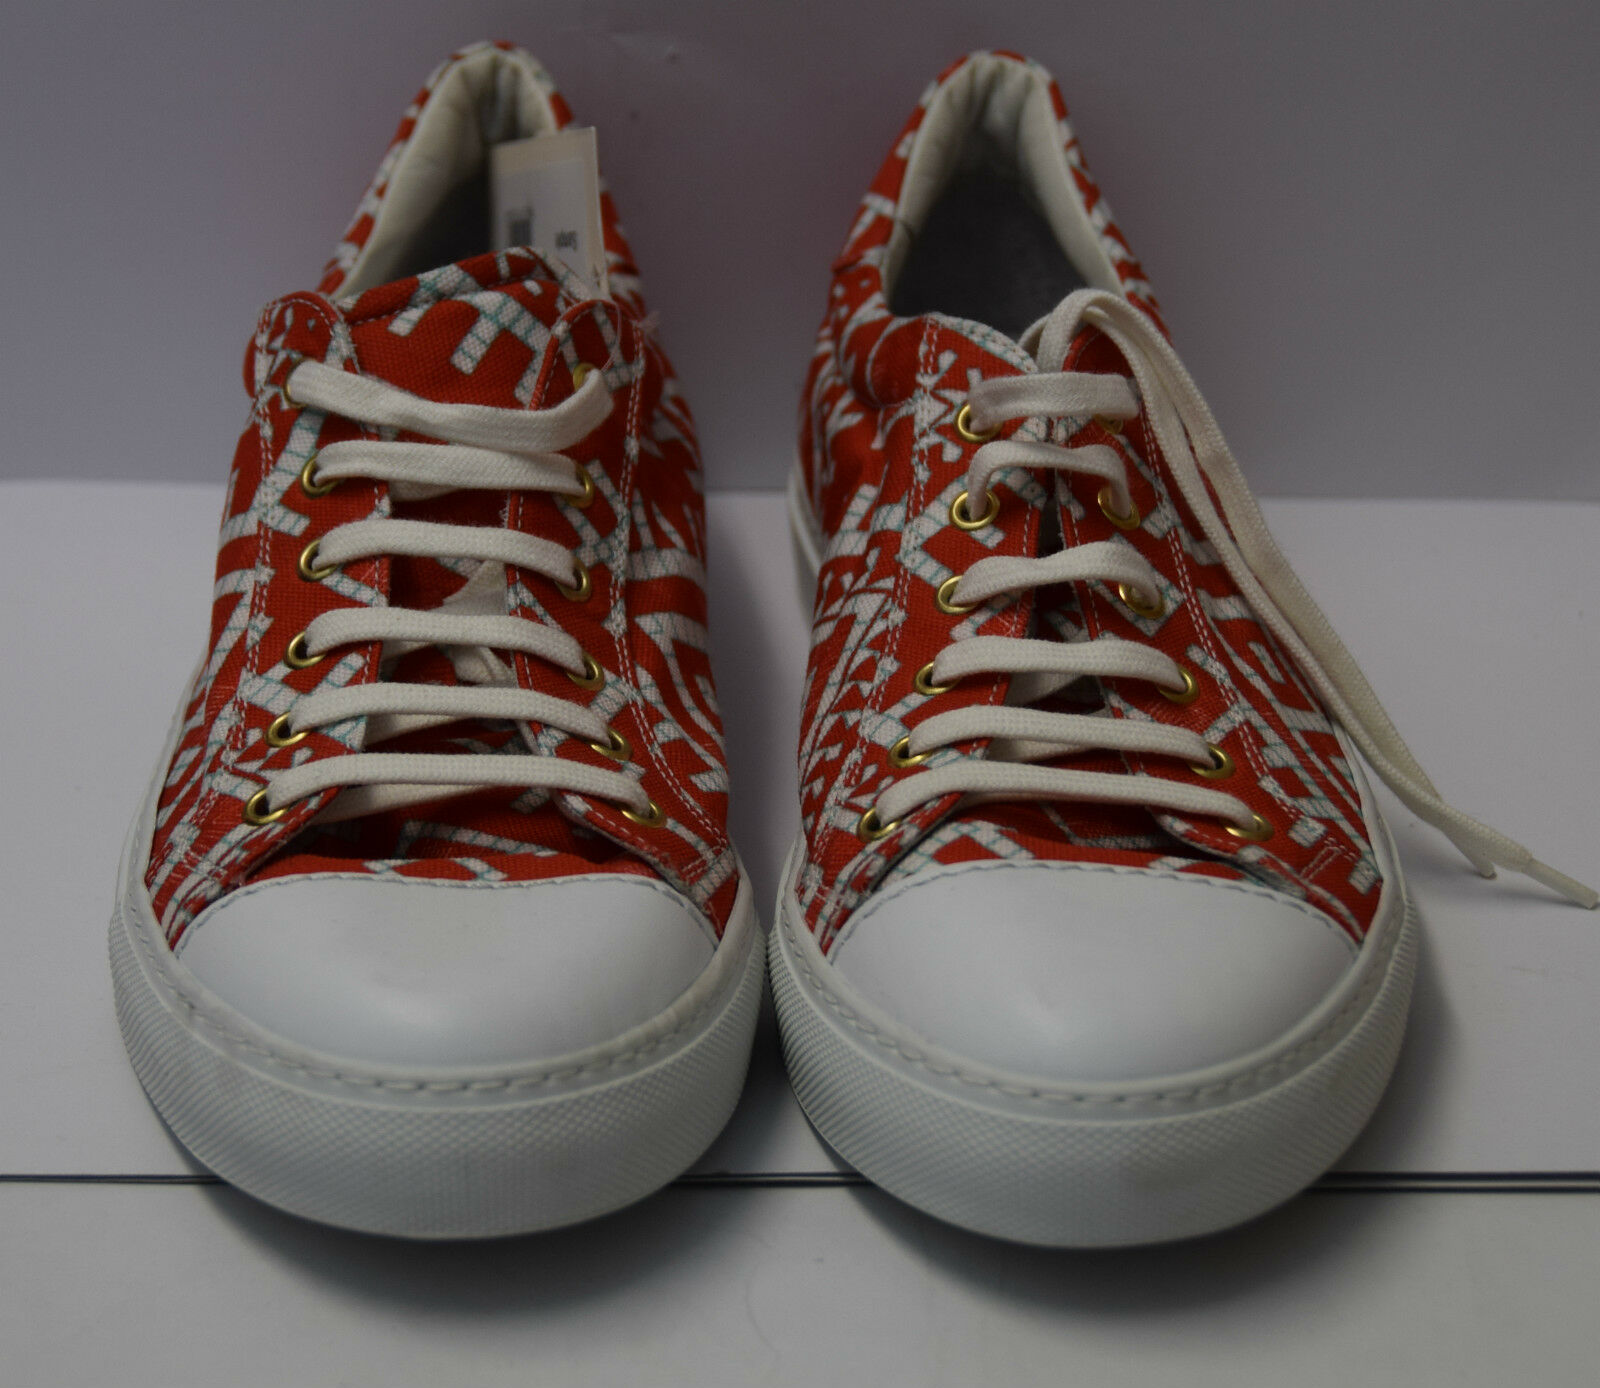 TEMPERLEY LONDON LONDON TEMPERLEY Sample Marine Canvas Sneakers Size 40 - 7 8762b7